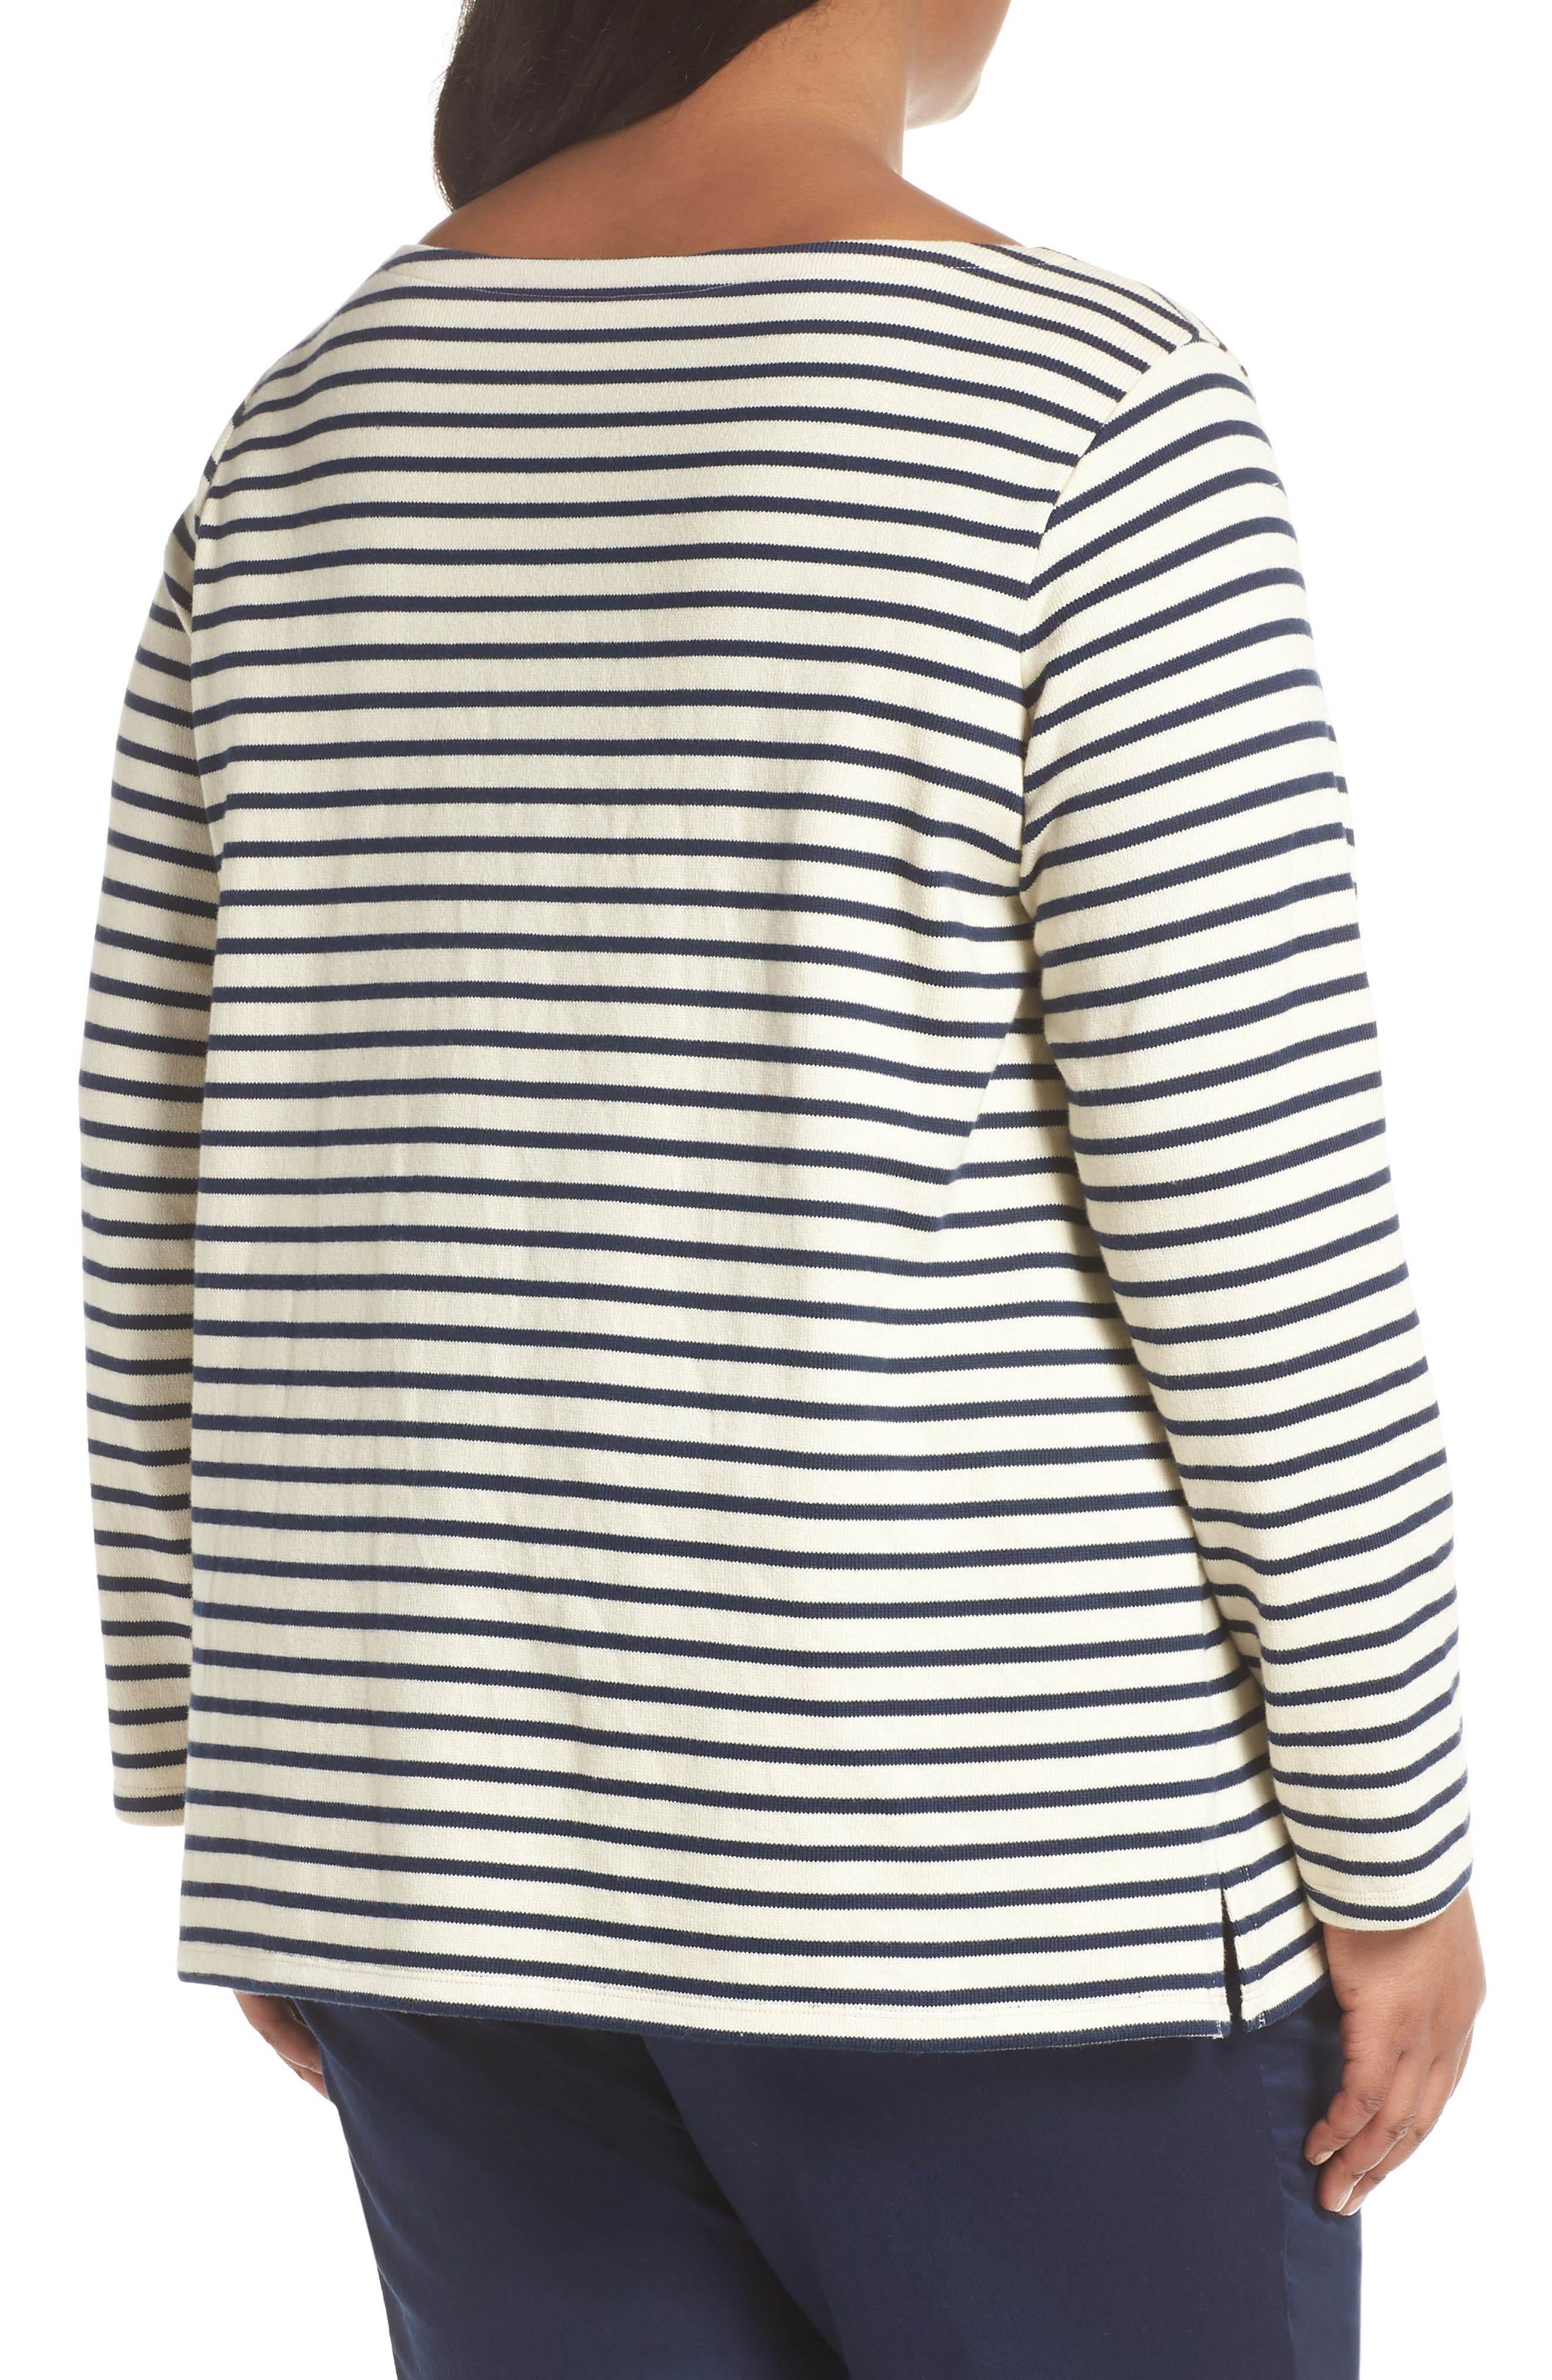 EILEEN FISHER, Seaside Stripe Bateau Neck Tunic, Alternate thumbnail 2, color, 103